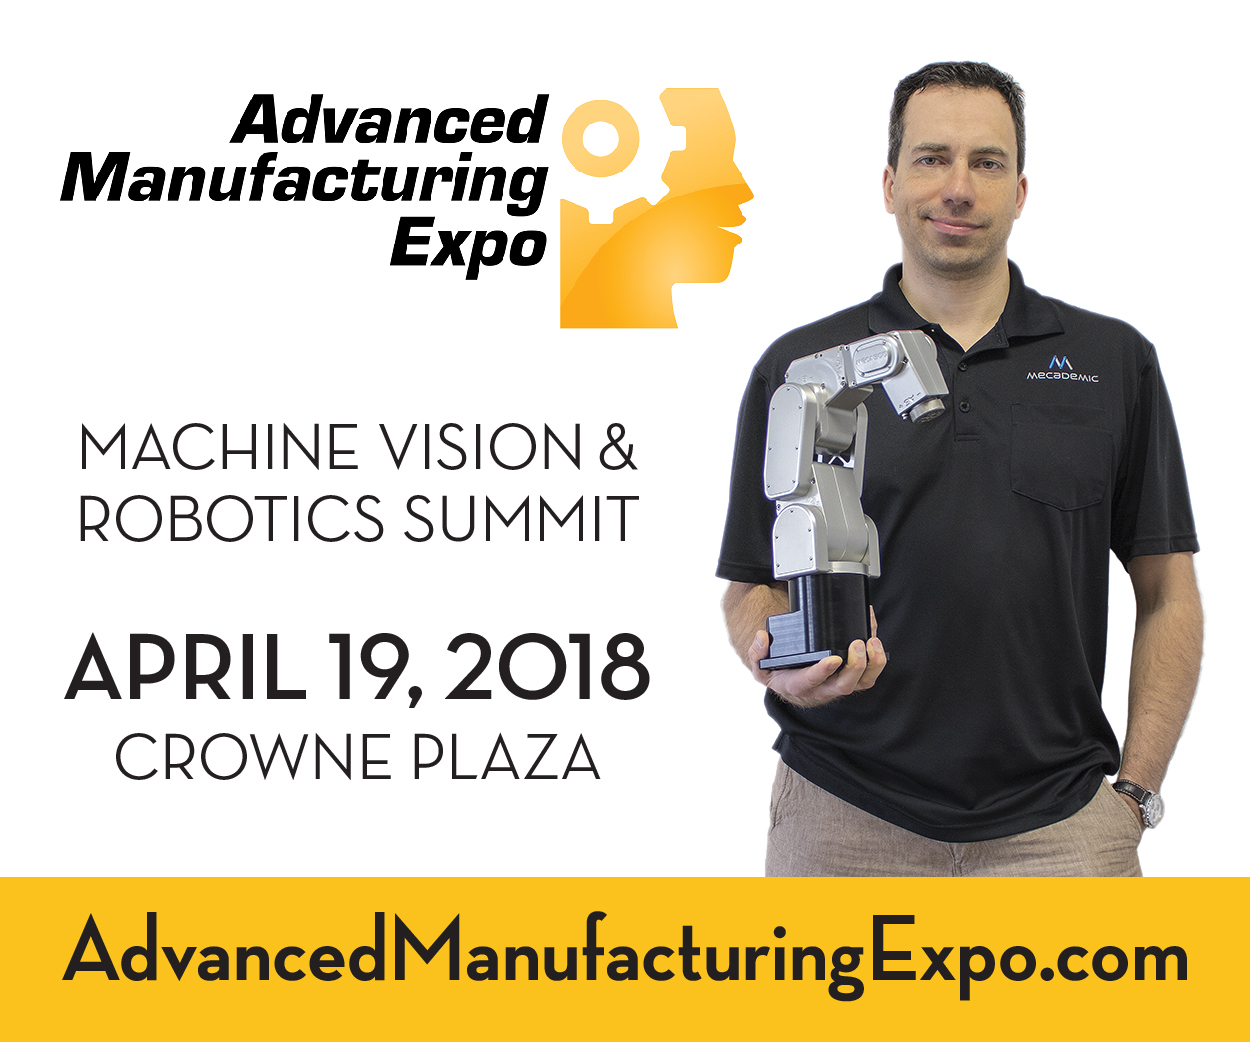 300x250 banner ad for AME 2018 MVR Summit.jpg